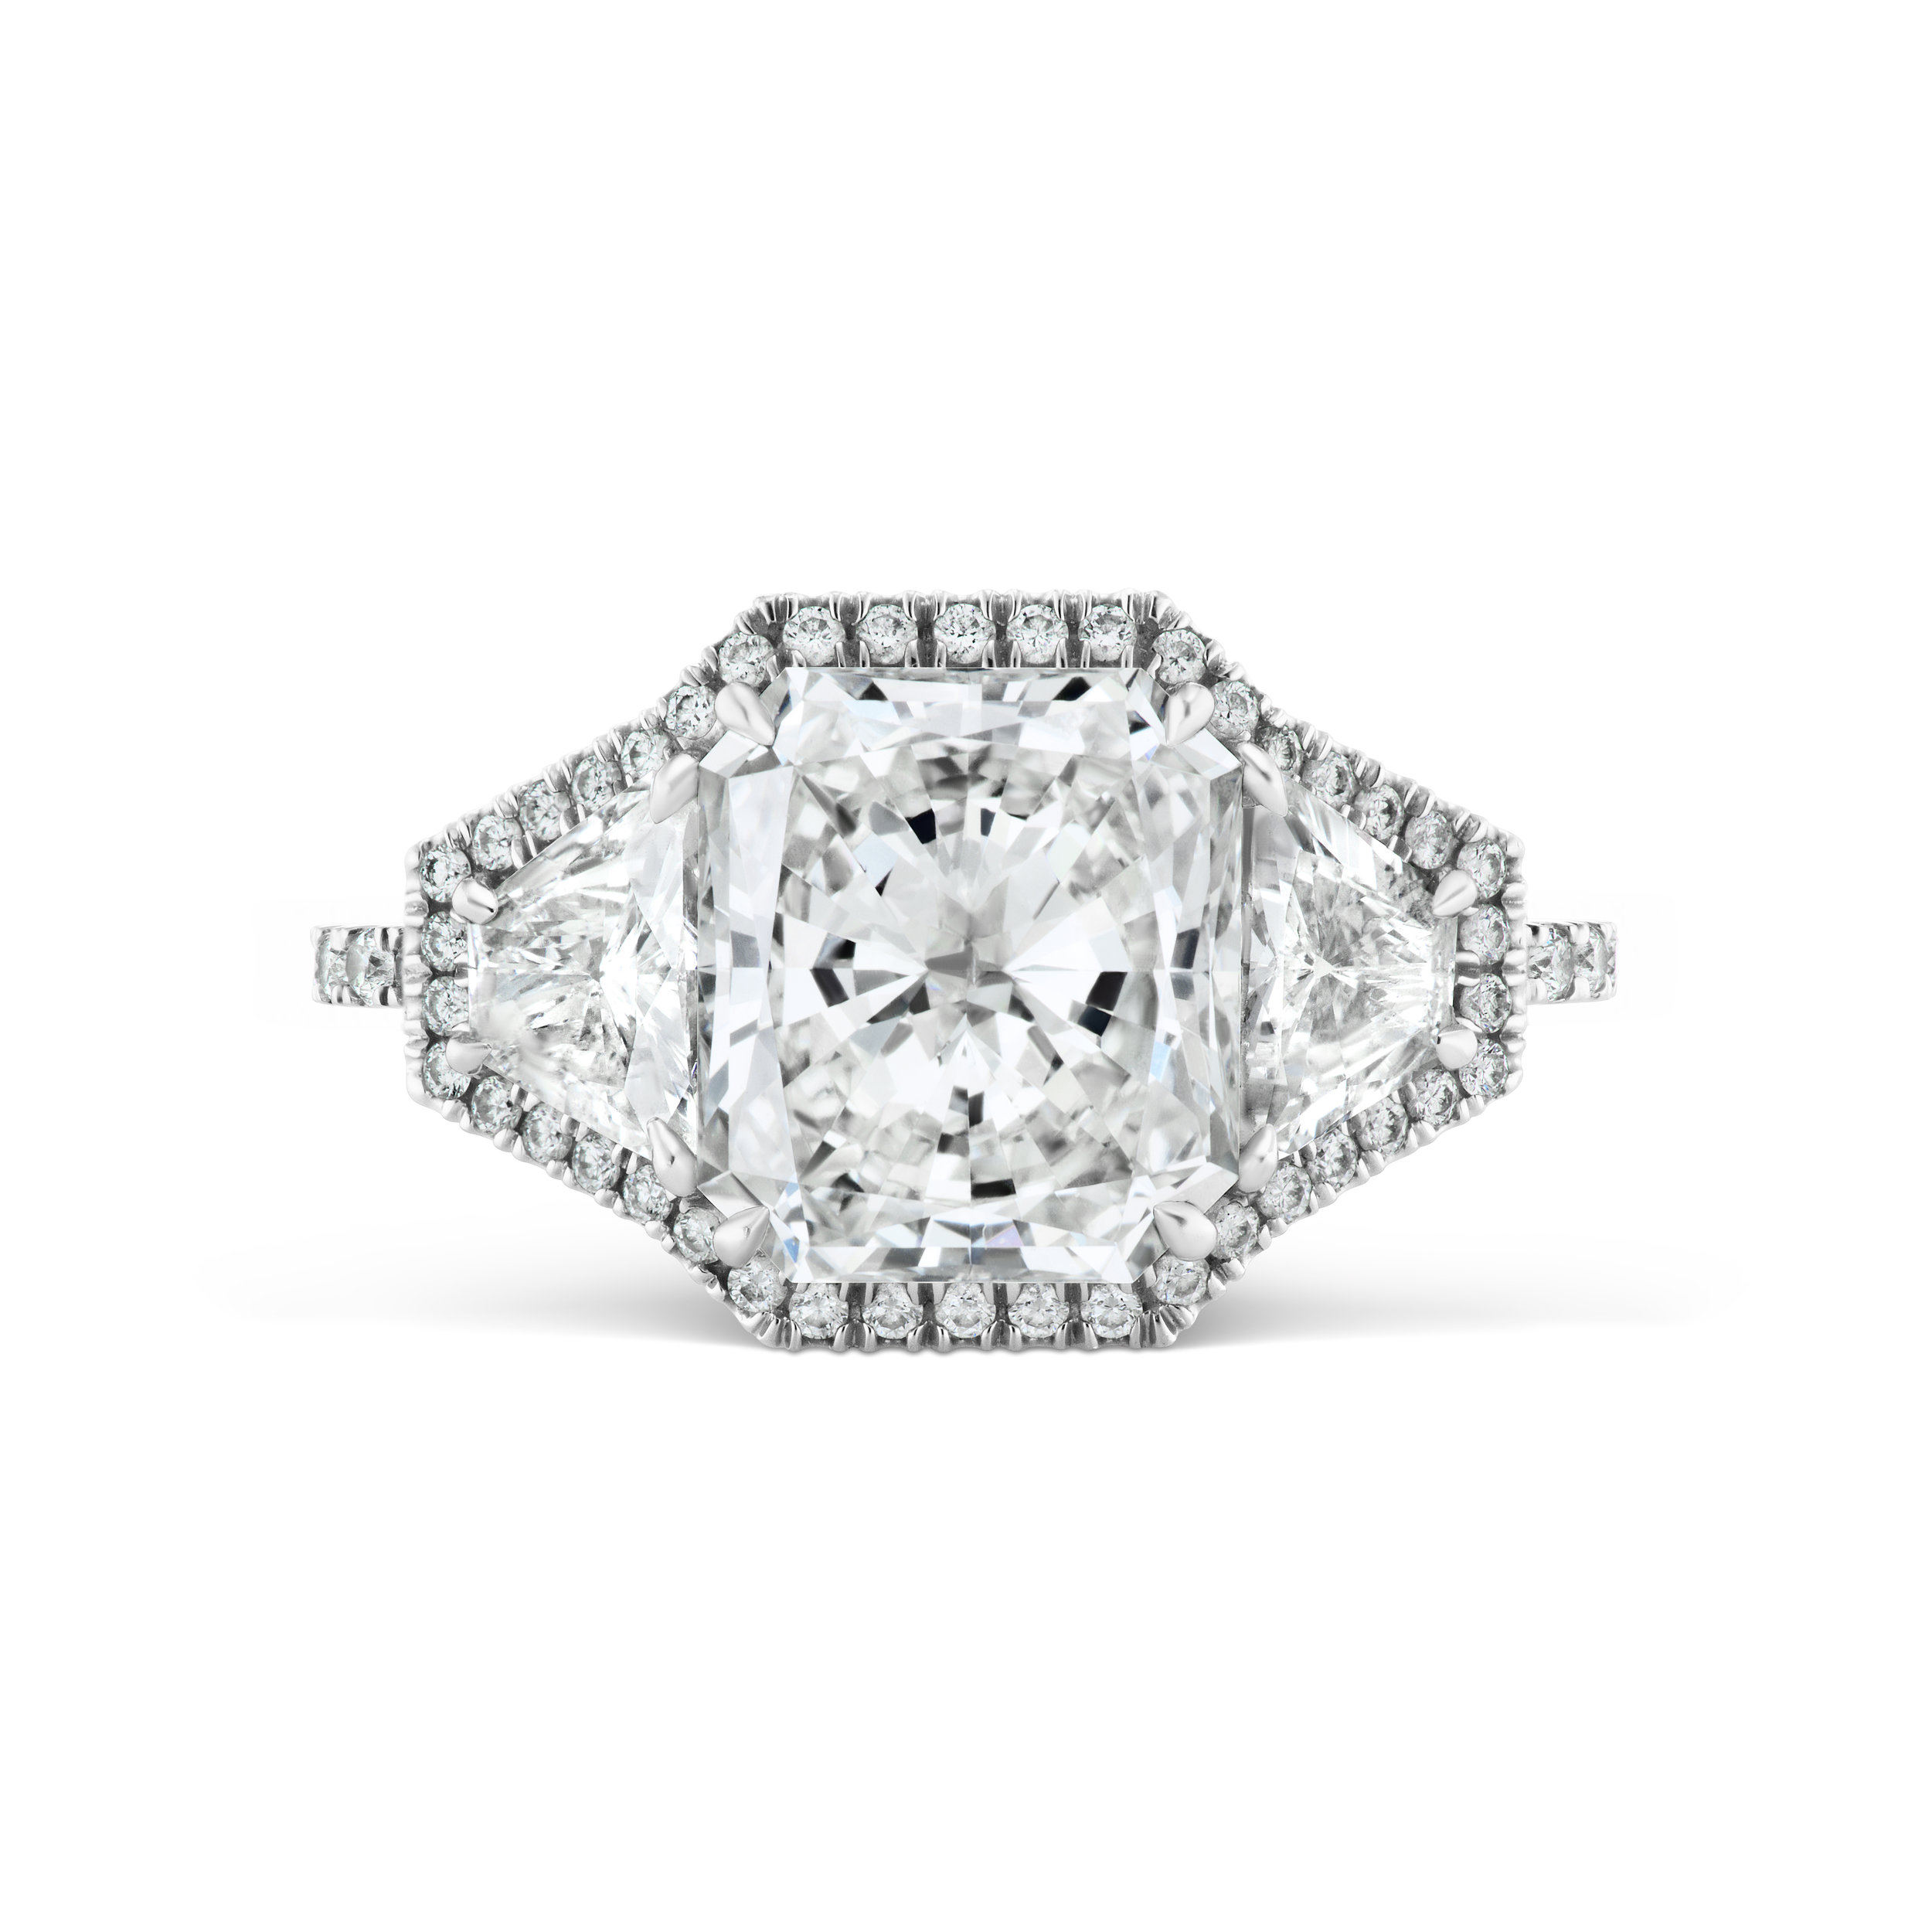 Radiant cut diamond ring with micropavé diamond trim and band, mounted in platinum.